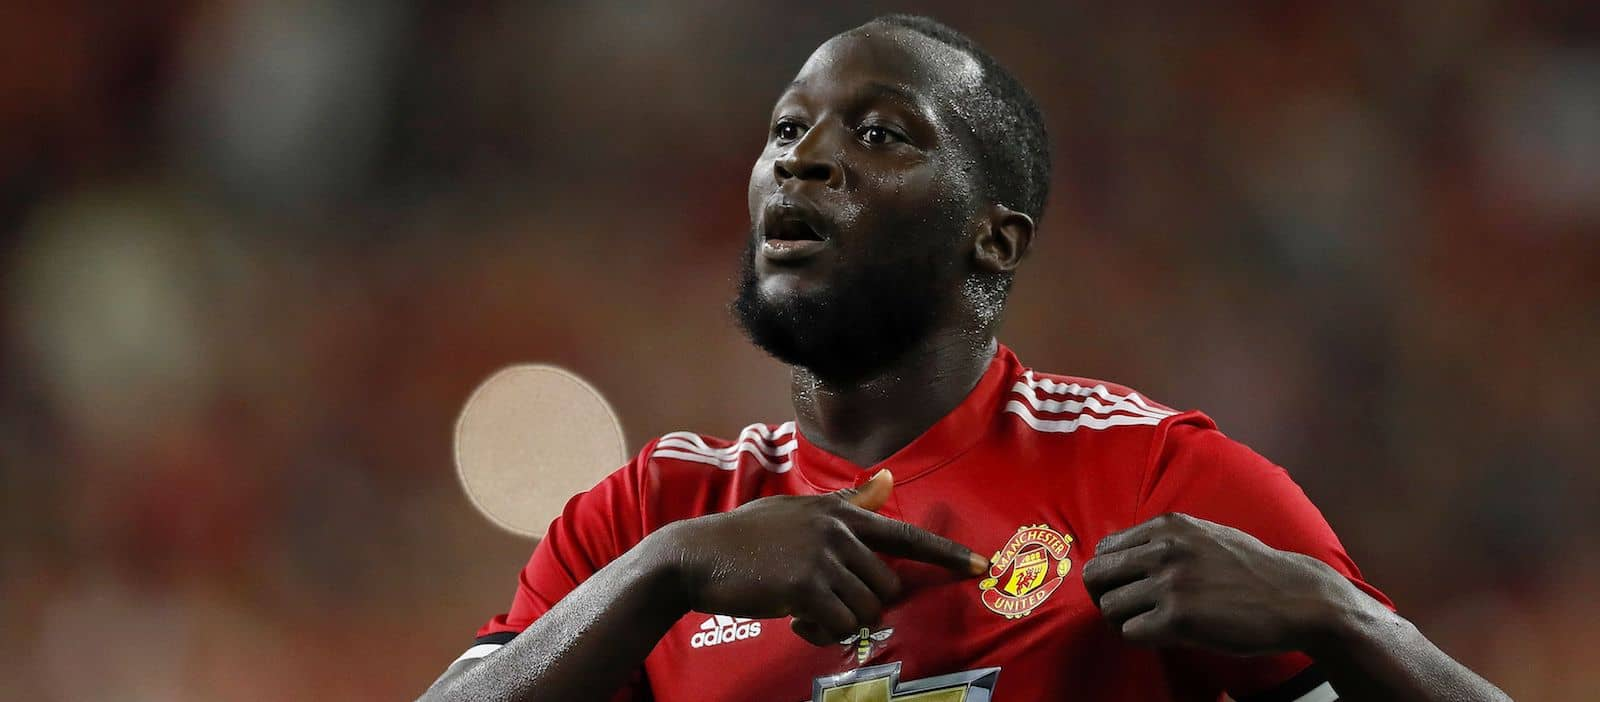 Ryan Giggs: Romelu Lukaku can turn Manchester United draws into wins